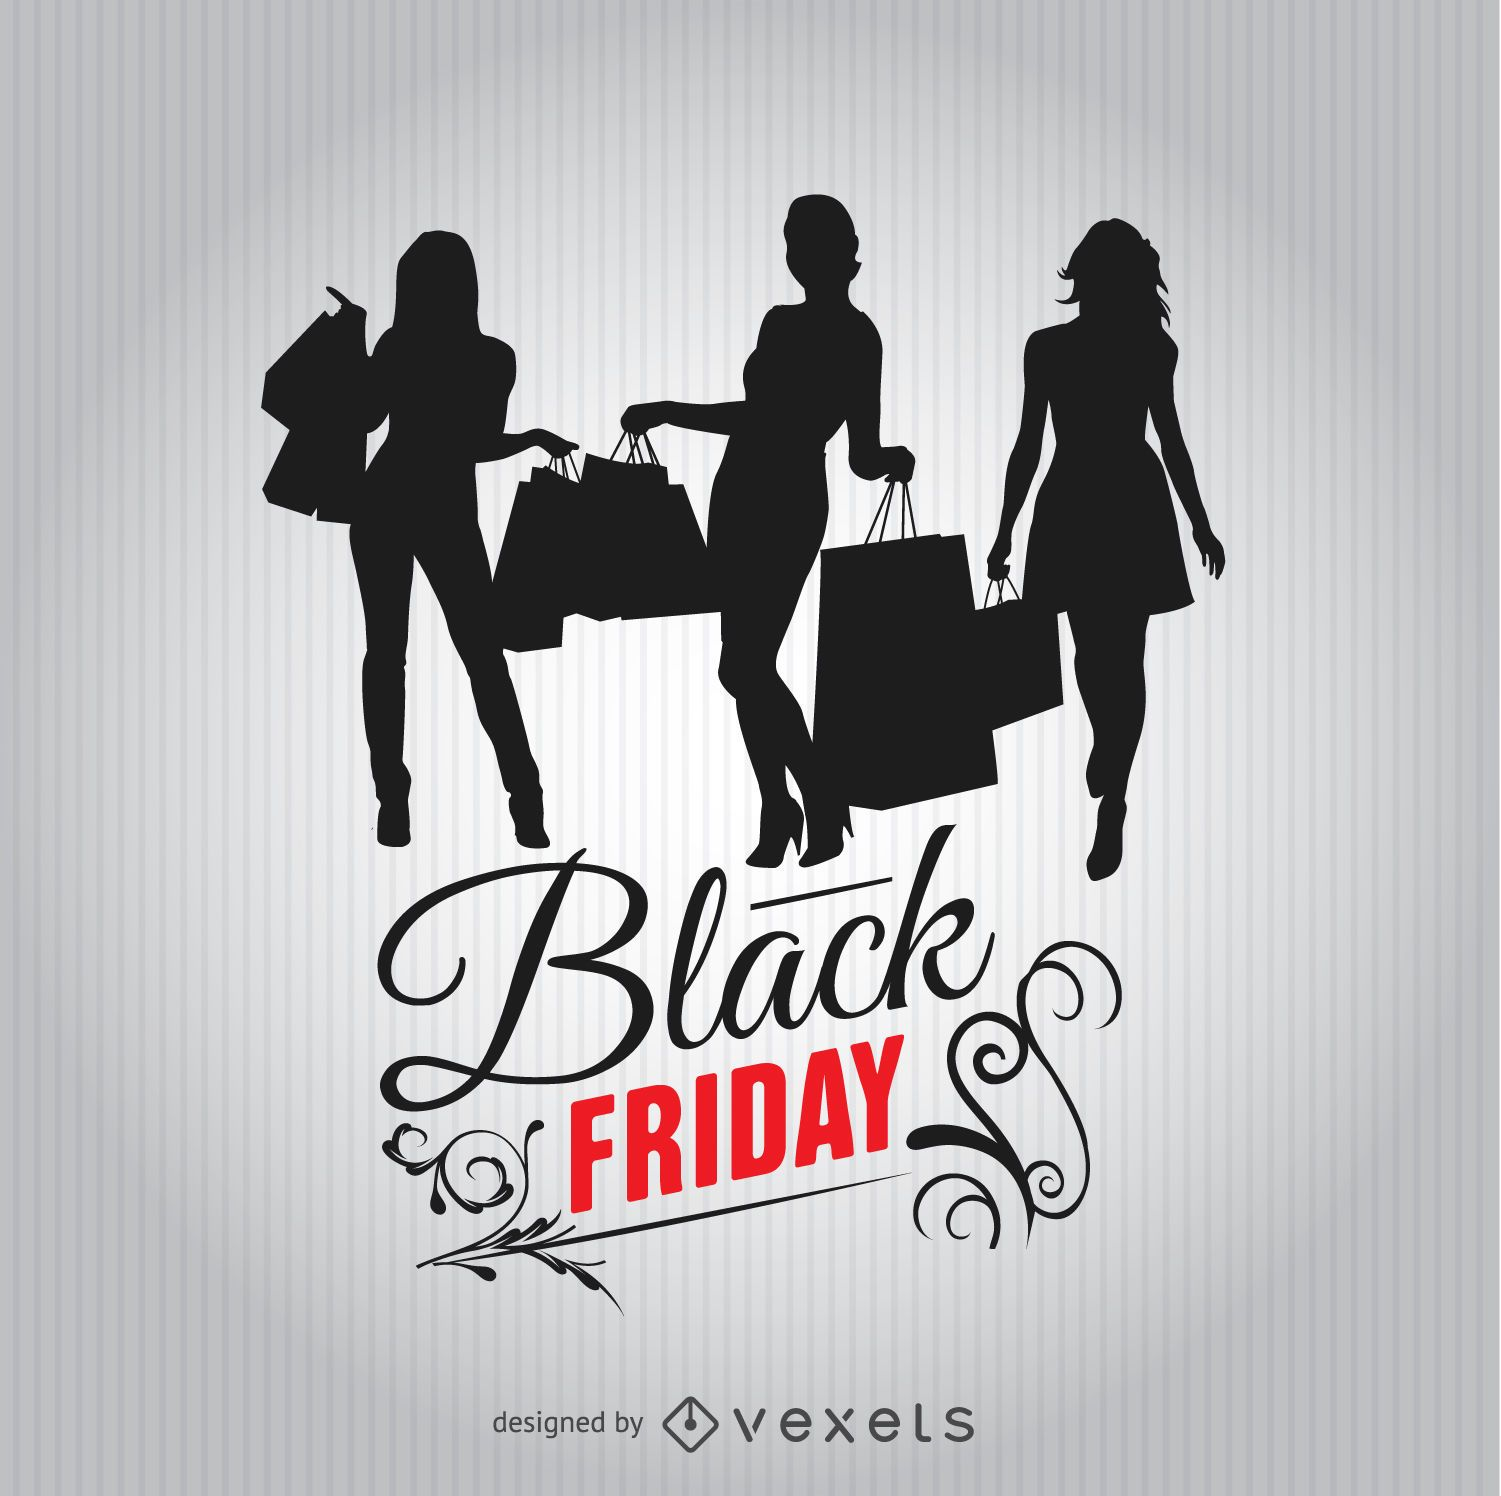 Discover the ASOS Black Friday & Cyber Monday sales with discounts on men's and women's clothing, shoes & accessories. Find the best deals at ASOS. your browser is not supported. To use ASOS, we recommend using the latest versions of Chrome, Firefox, Safari or Internet Explorer.